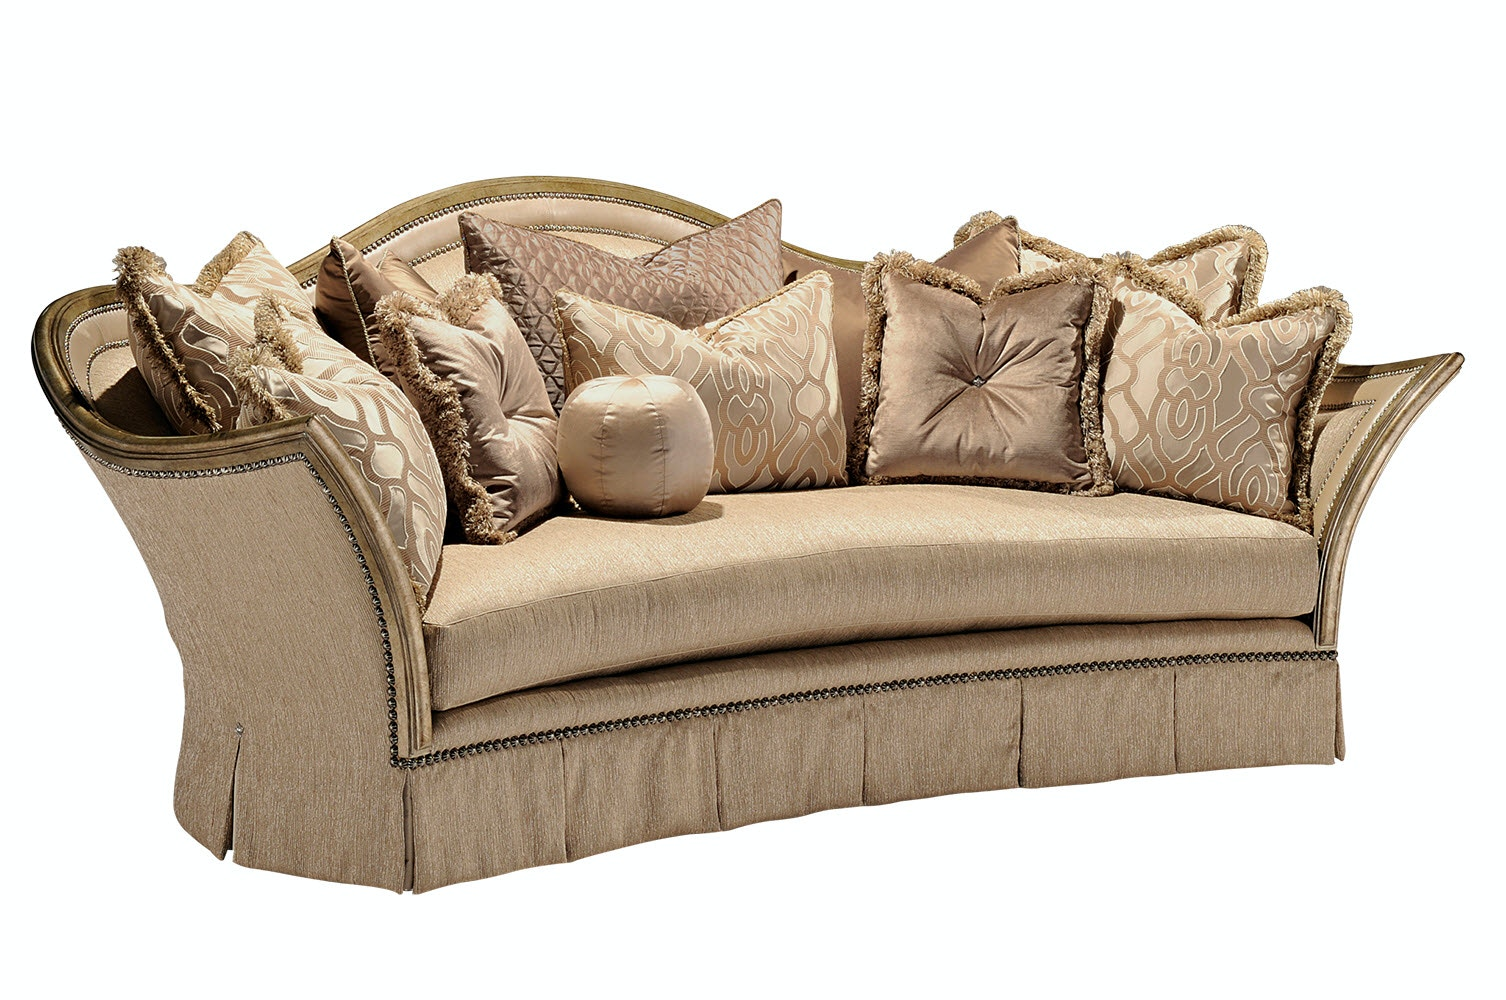 Marge Carson Living Room Luciana Sofa LUC43 Noel Furniture